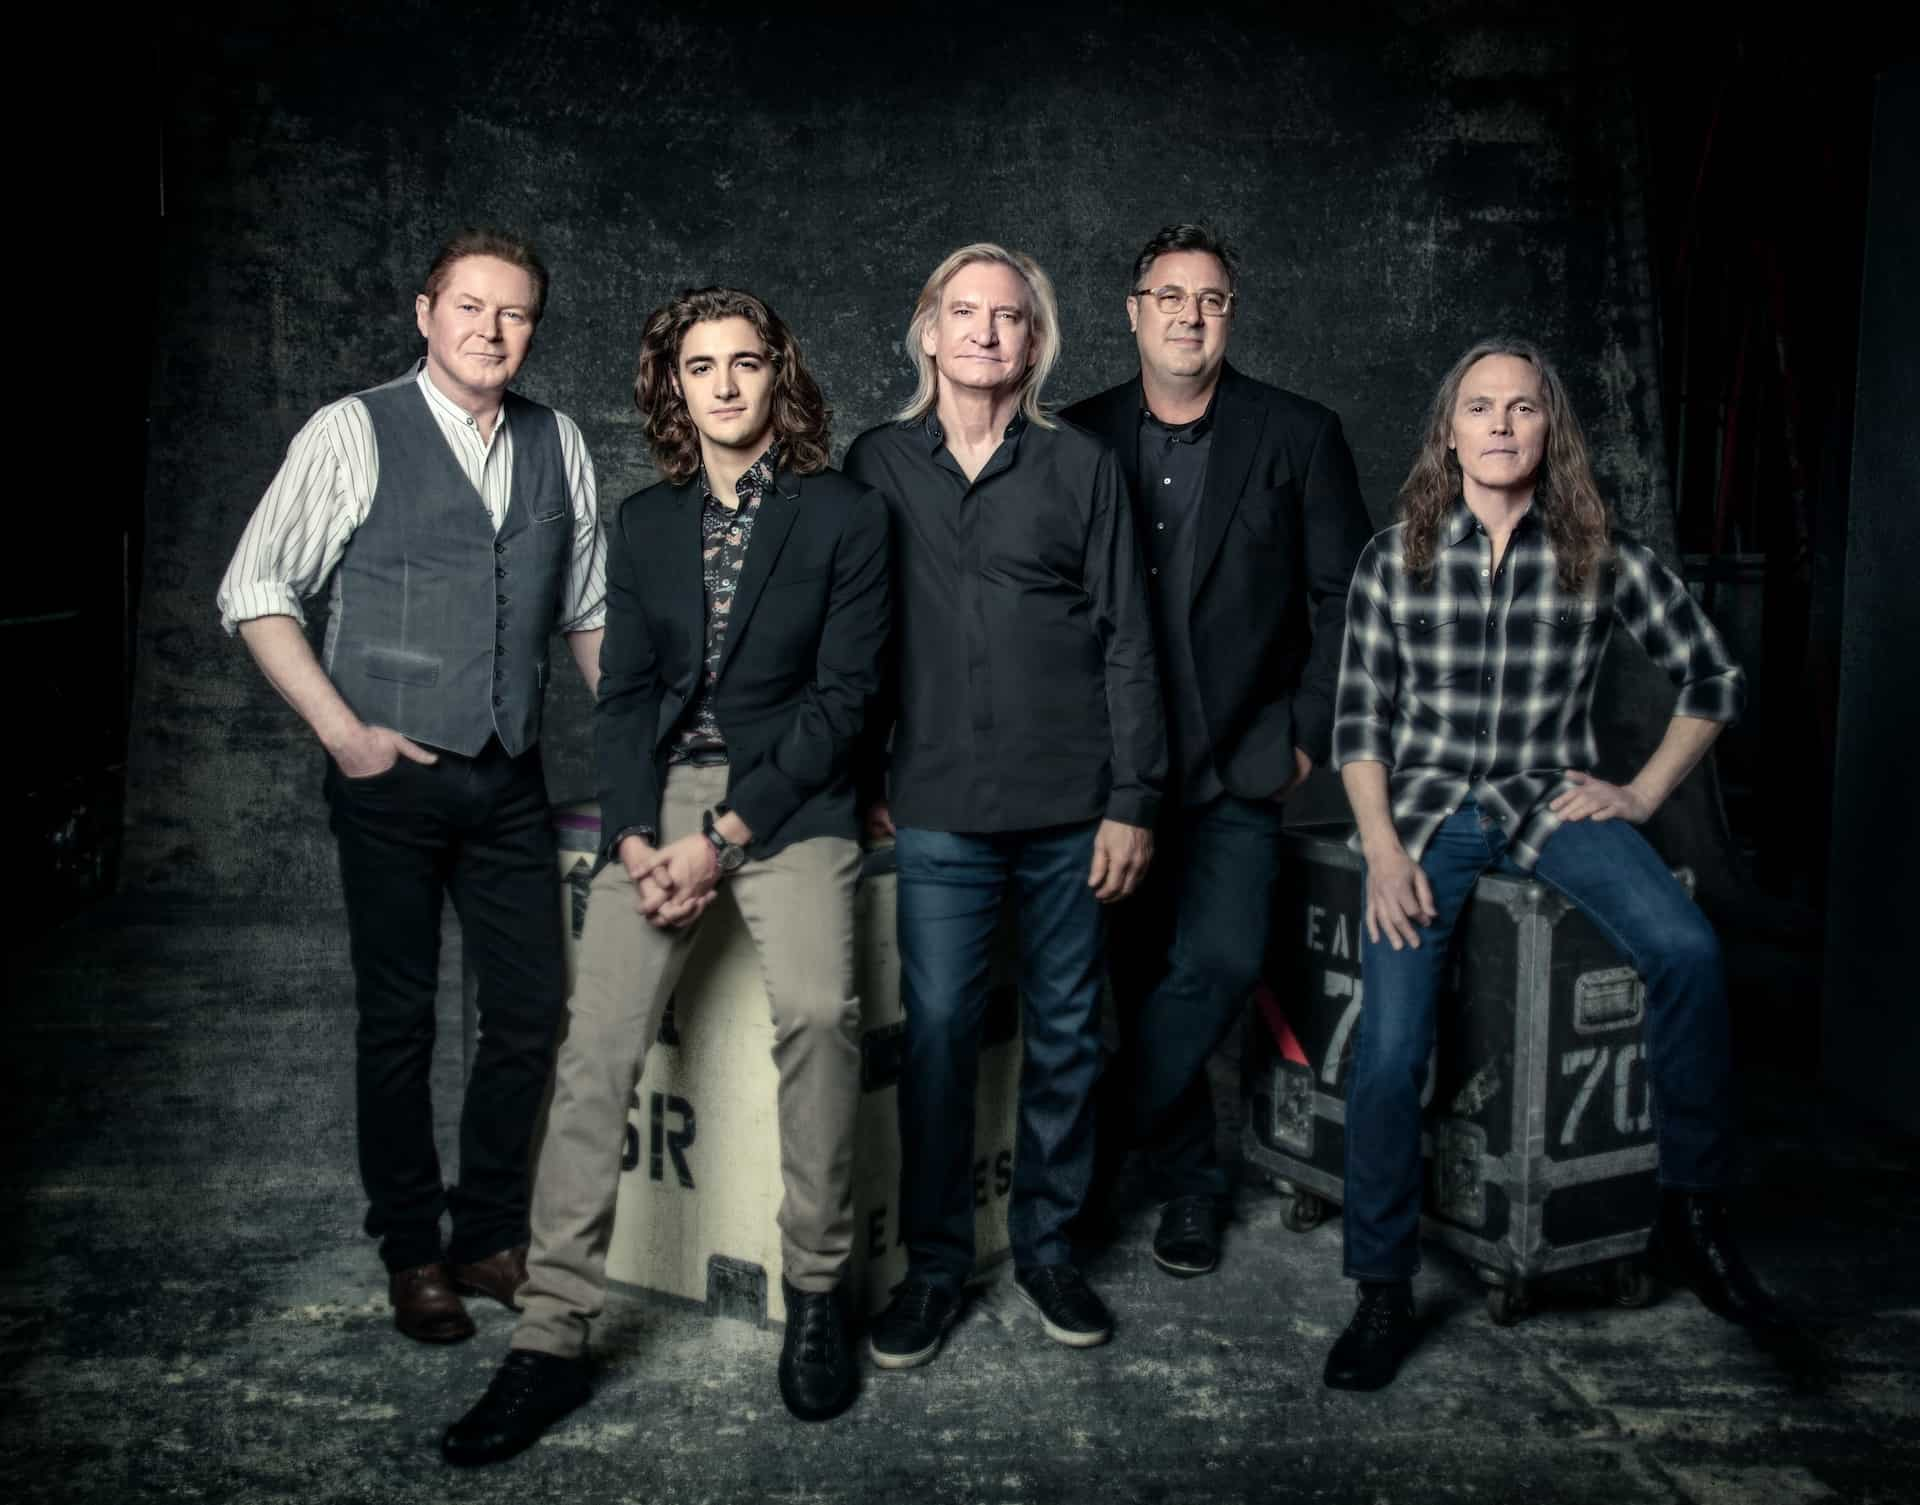 the-eagles-band